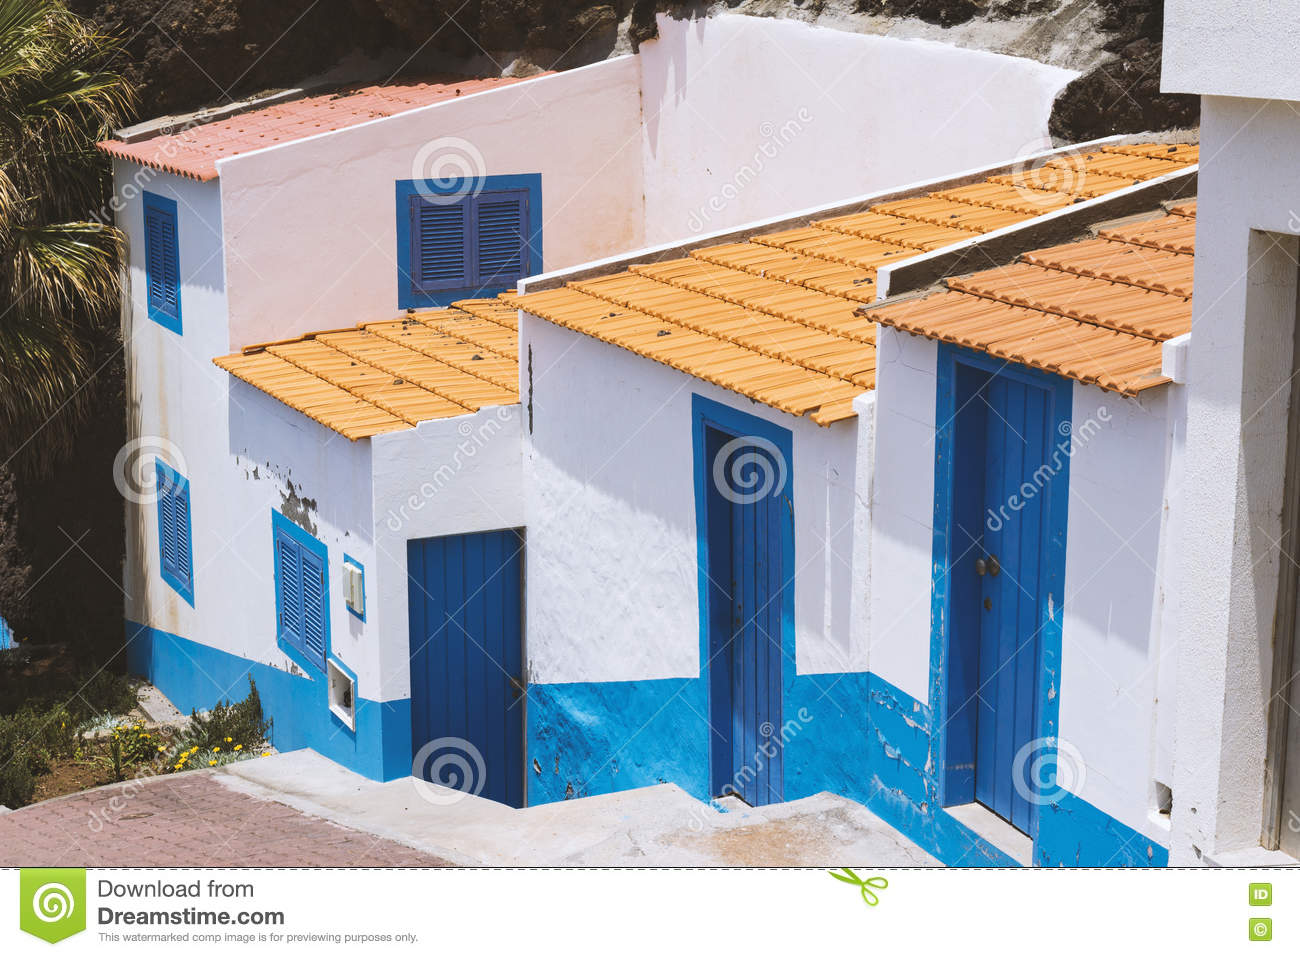 Conception commune et simple de la maison blanche et bleue for Conceptions de la maison com